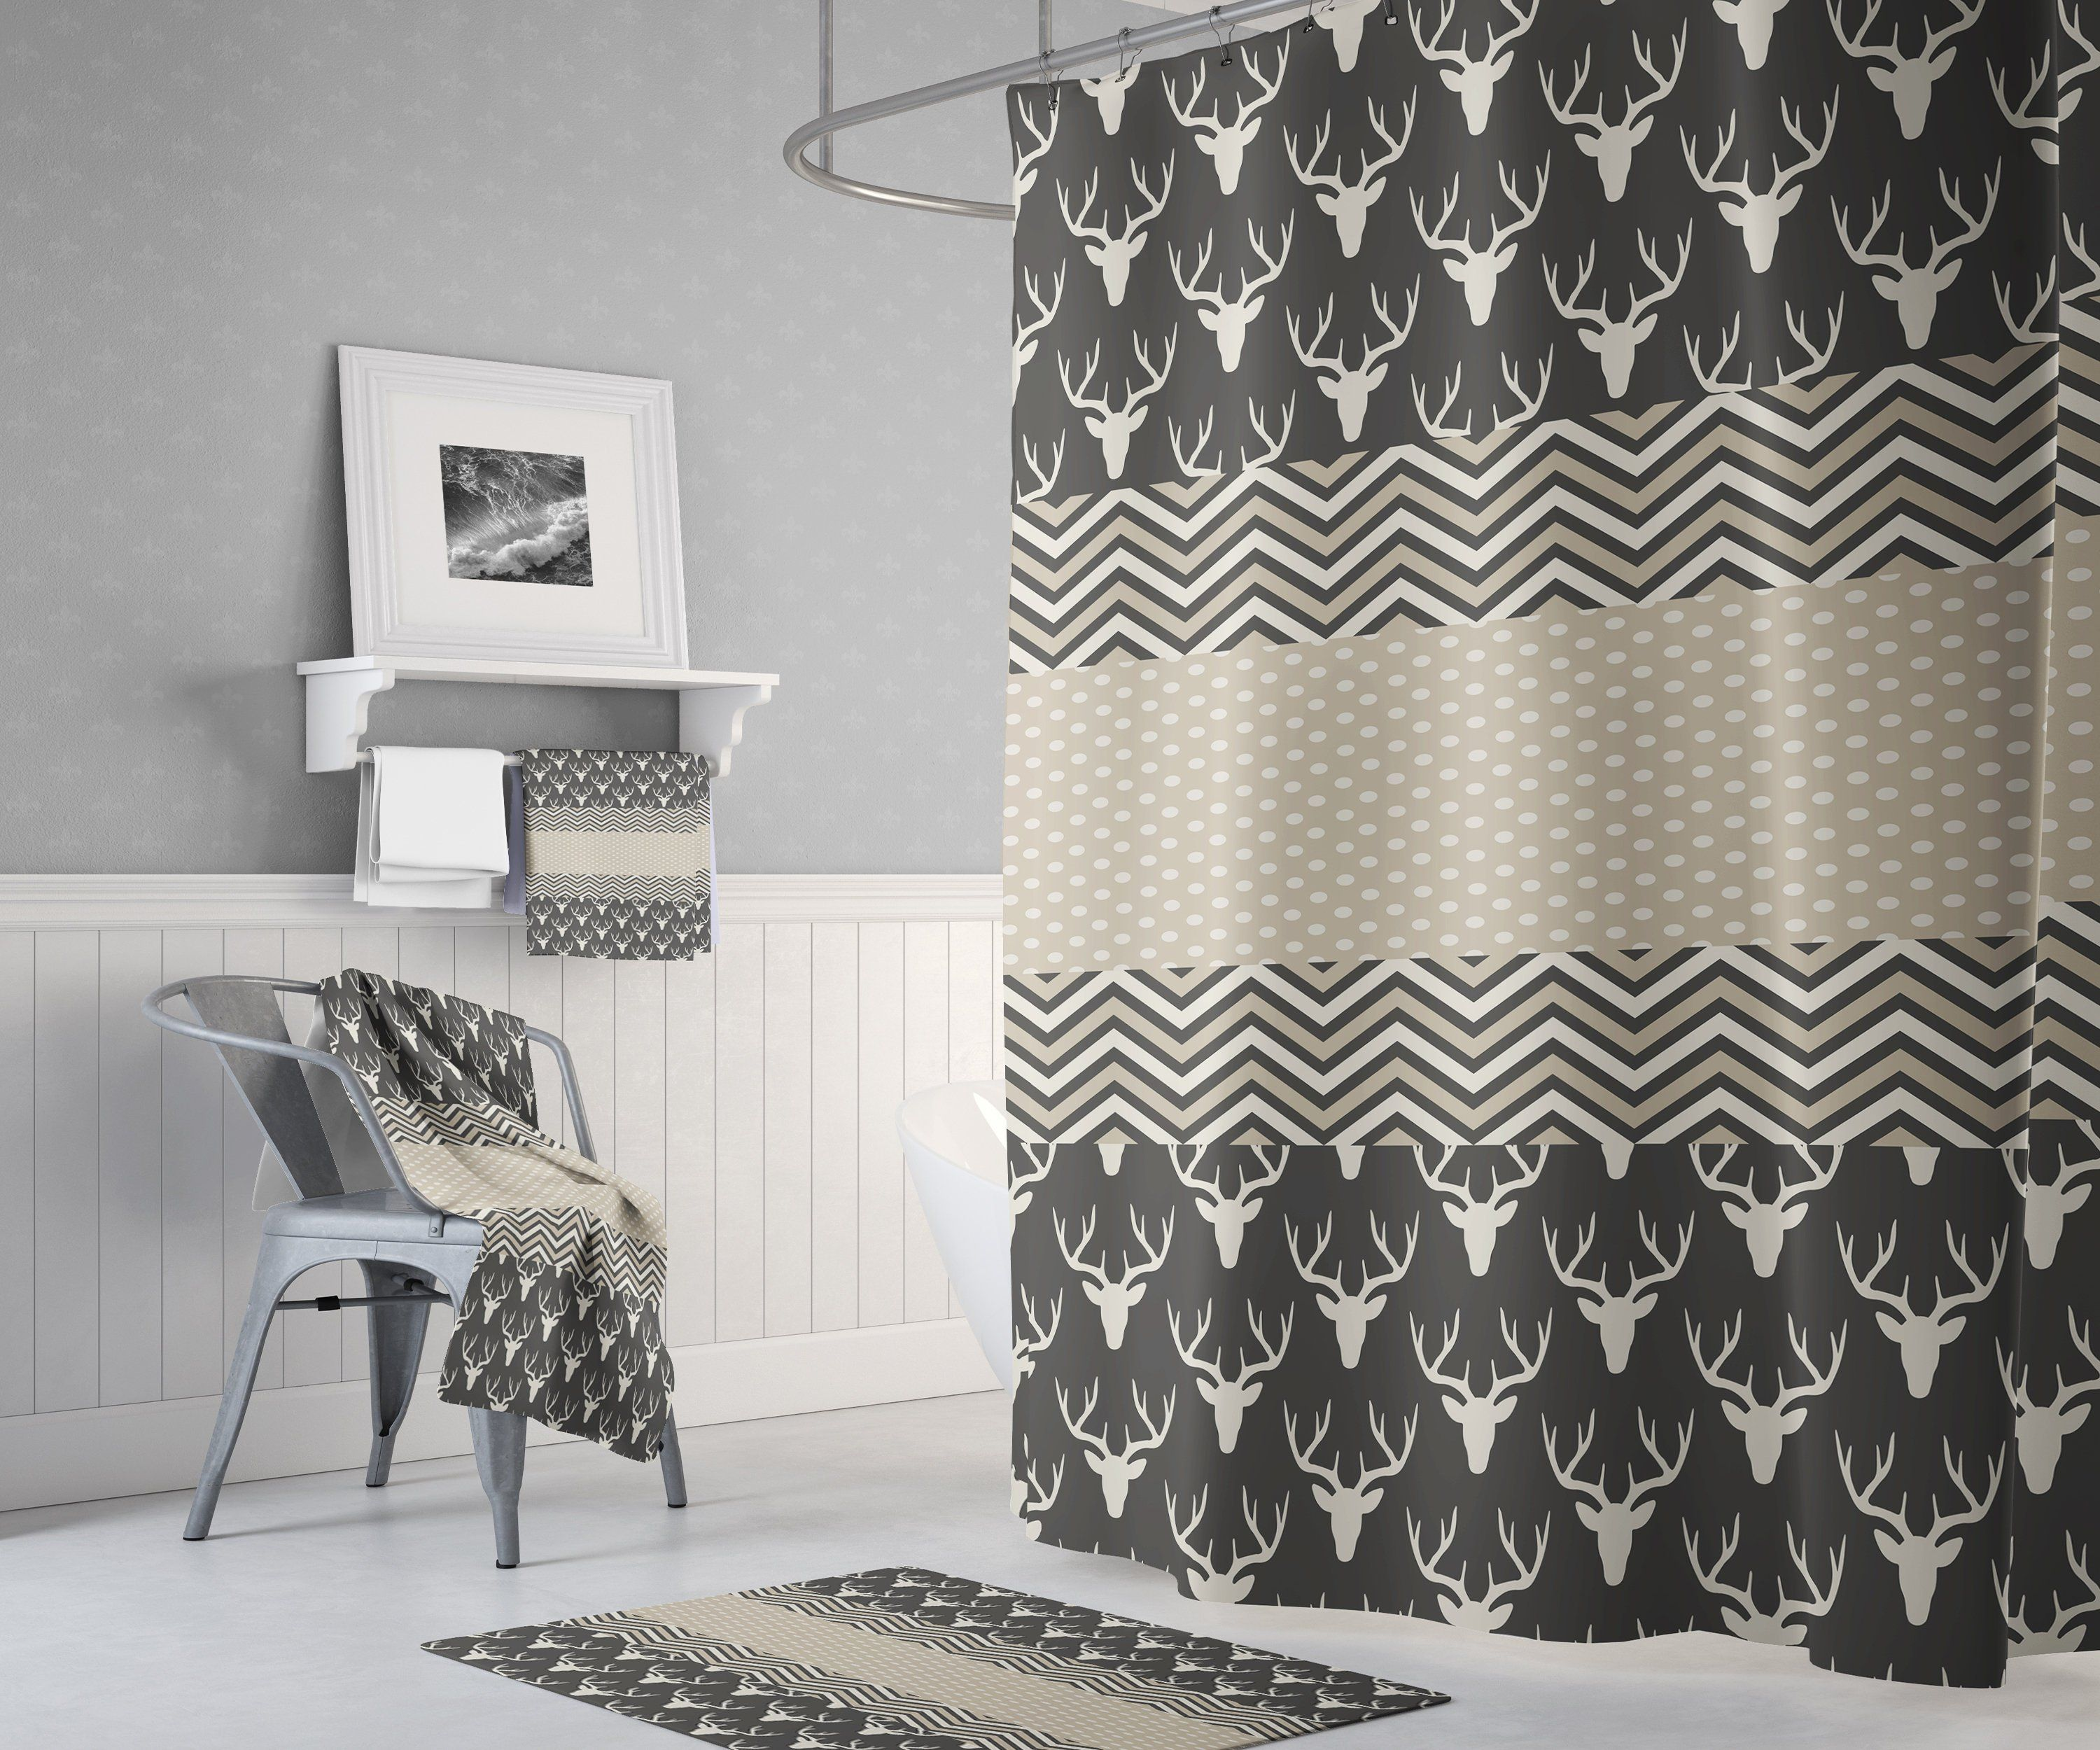 Shower Curtain With Deer Dark Pattern With Beige And Chevron